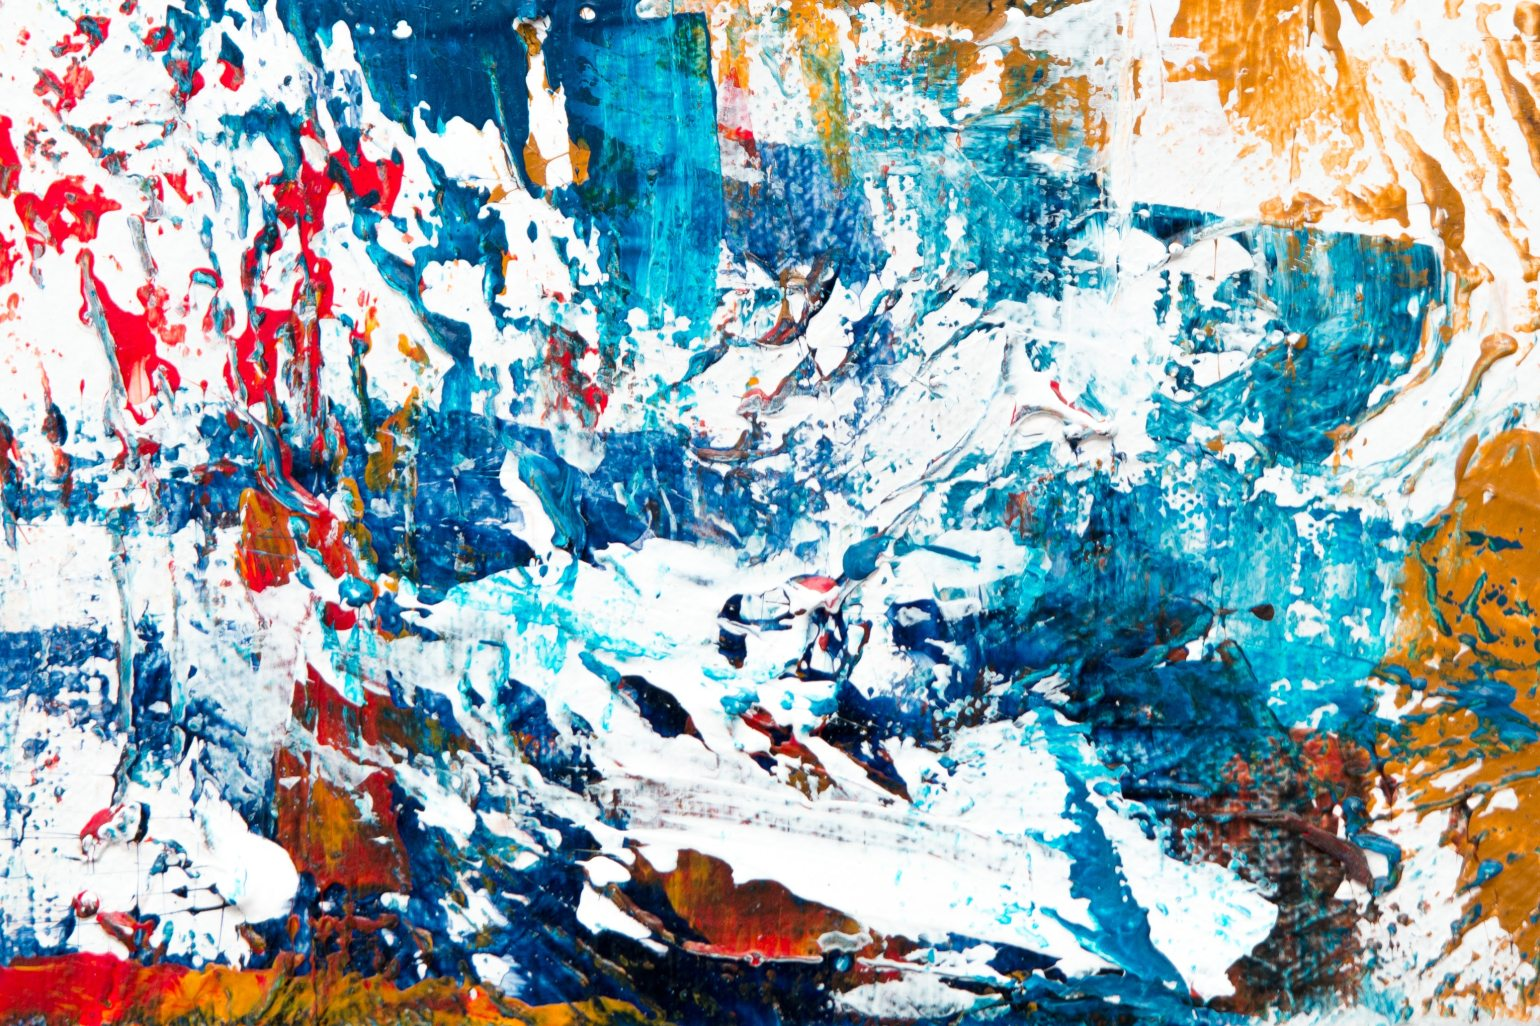 abstract-abstract-painting-acrylic-1143758